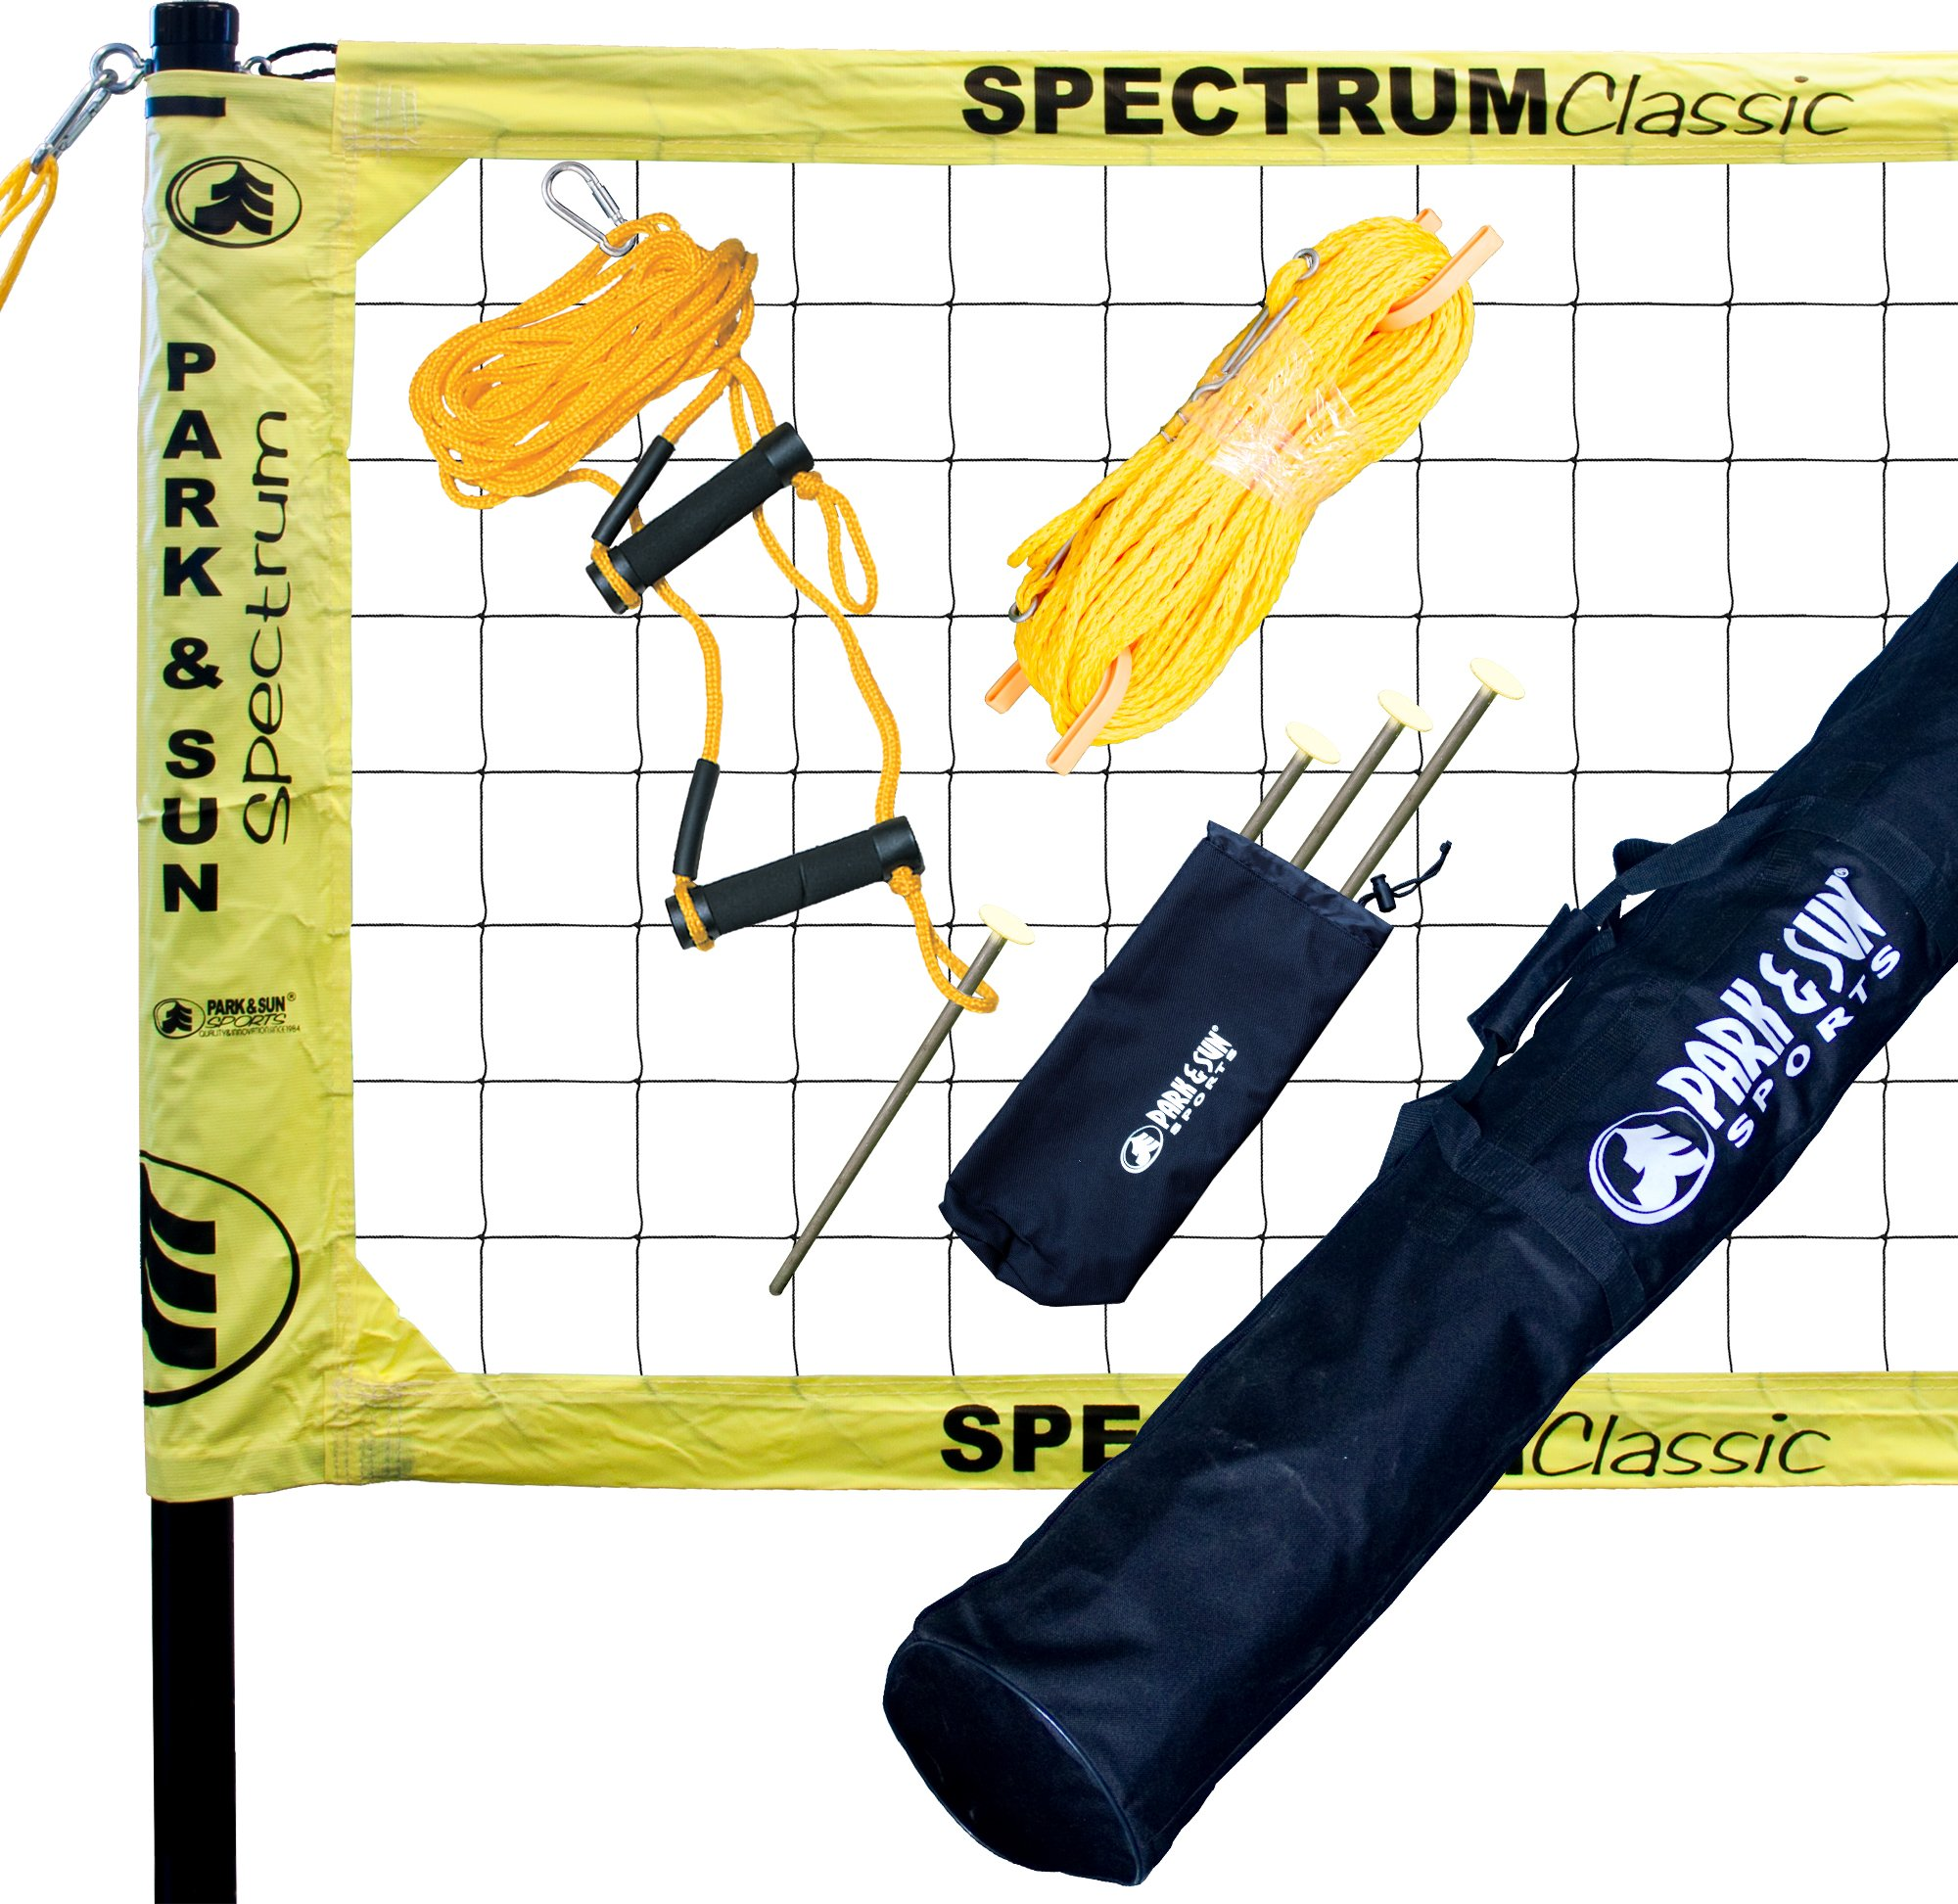 Park & Sun Sports Spectrum Classic: Portable Professional Outdoor Volleyball Net System, Yellow